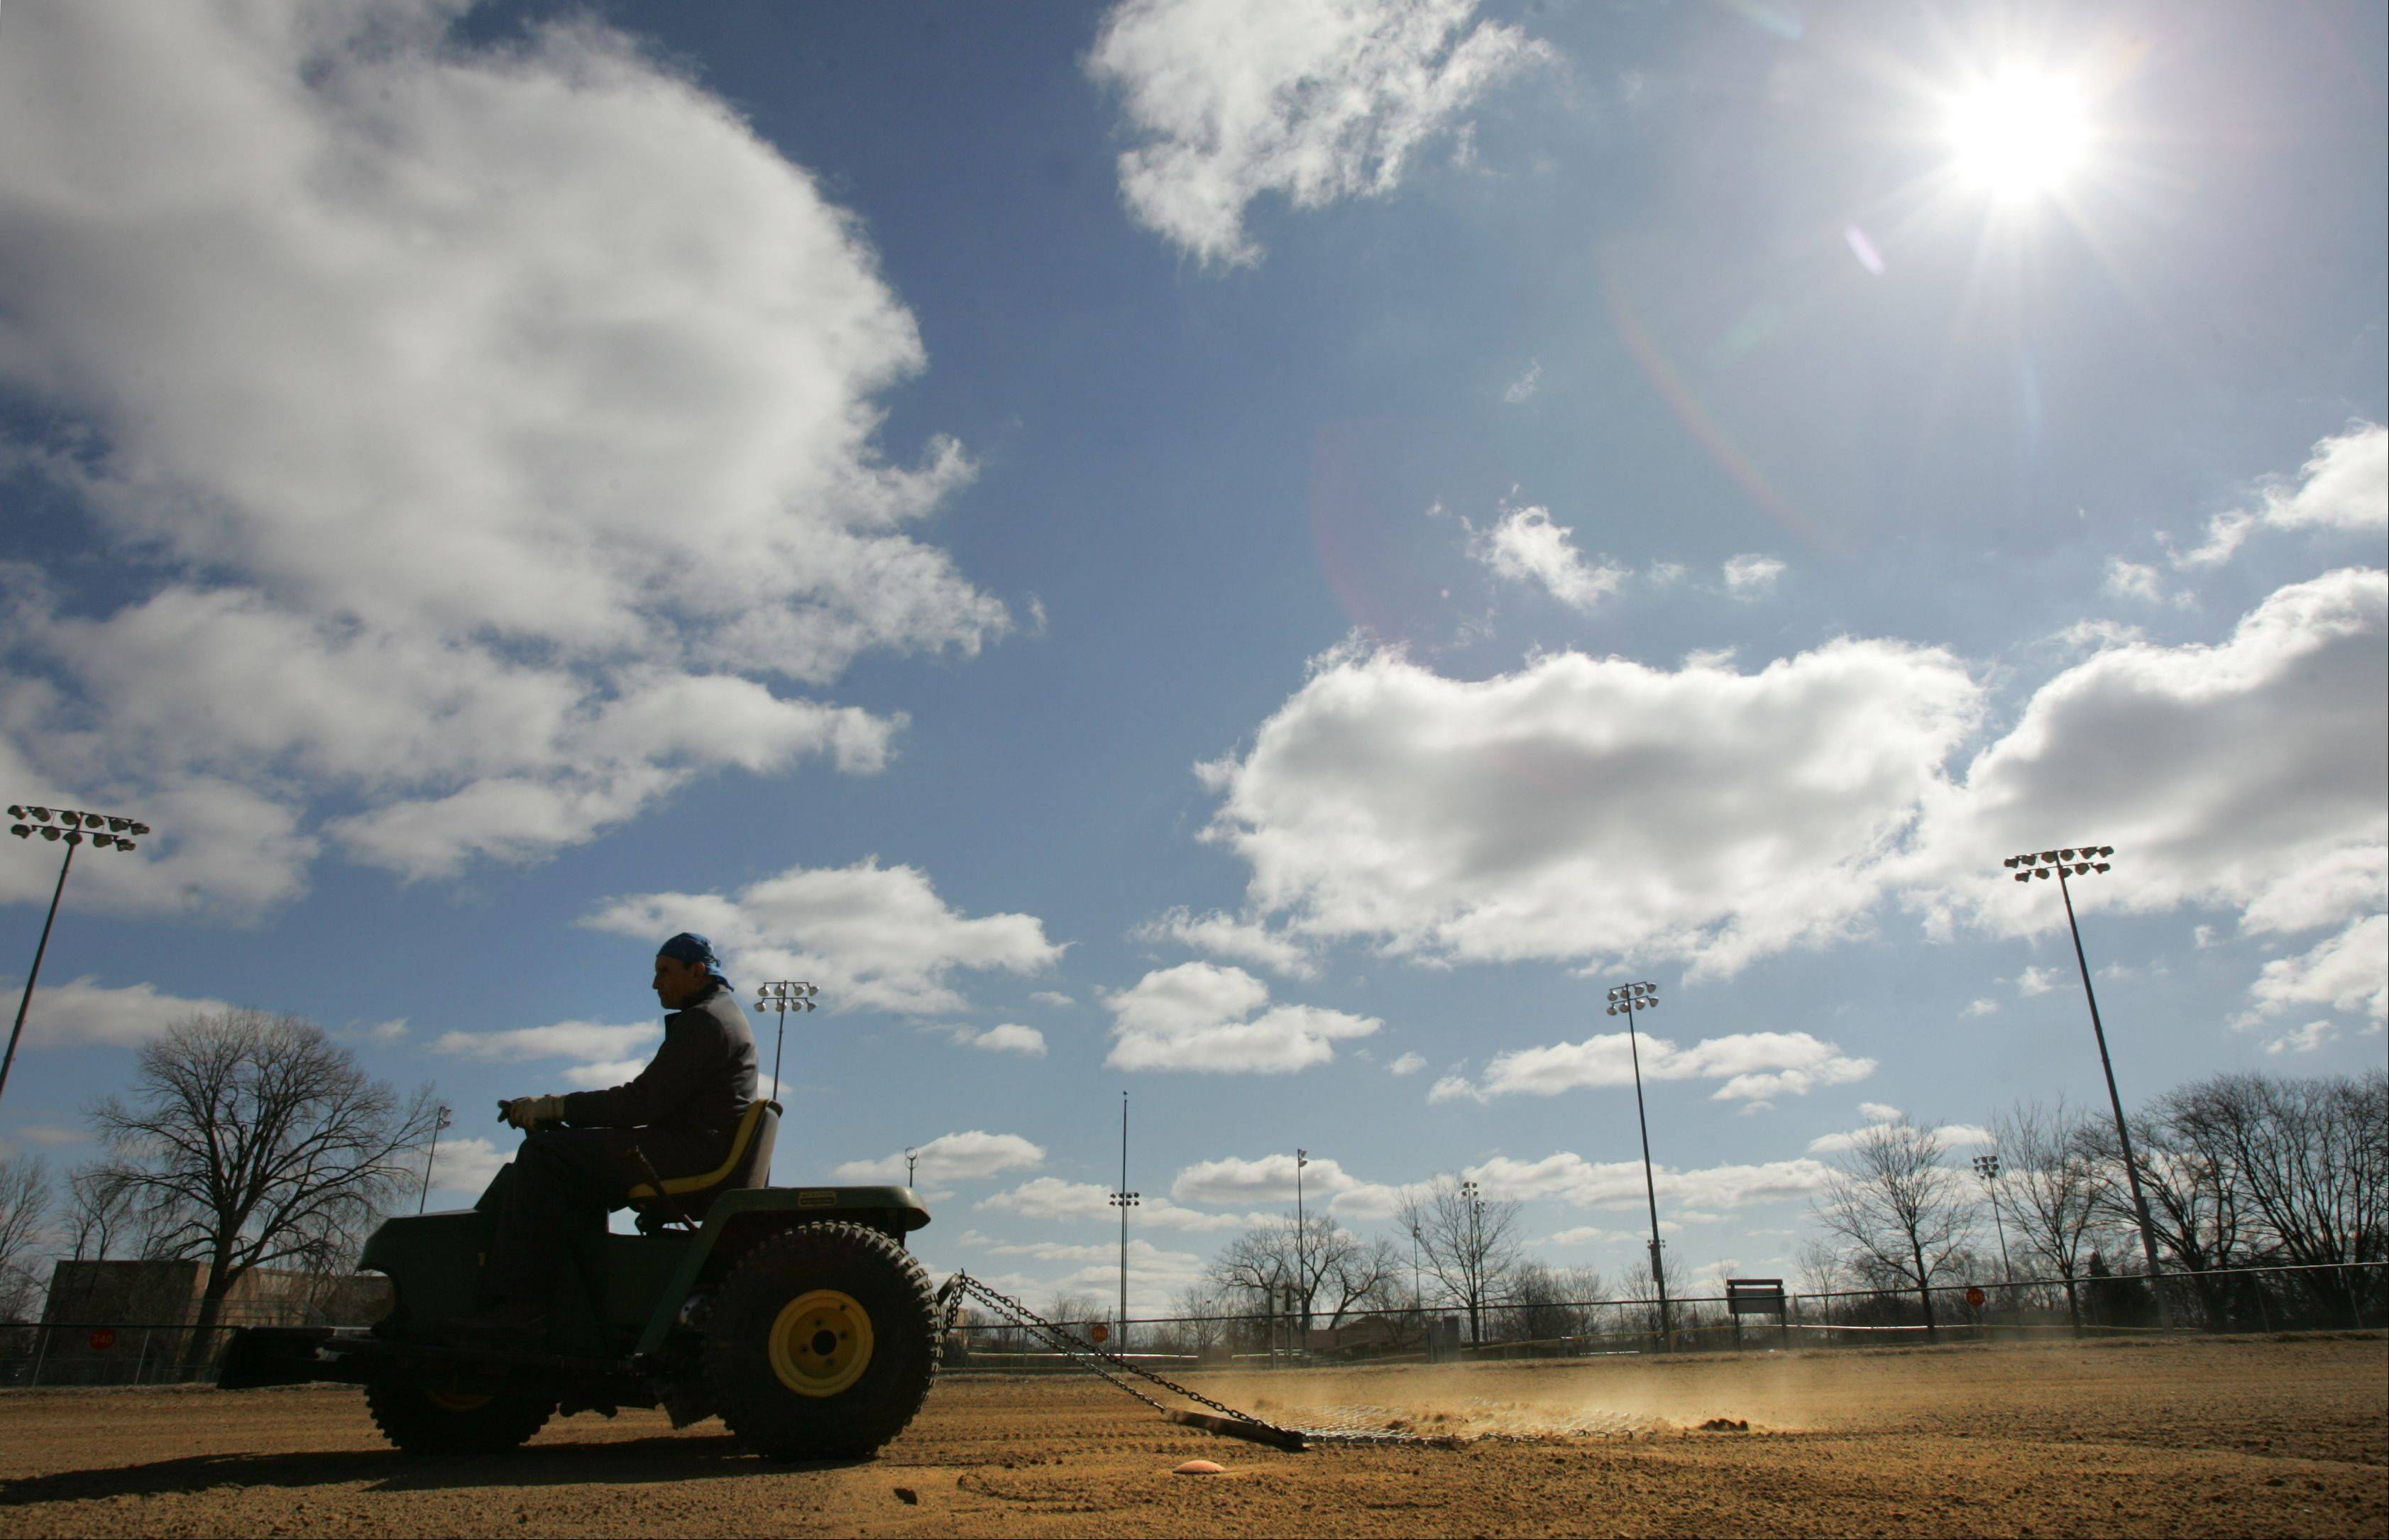 Elgin public works department employee Bill Rodriguez preps a ball diamond Monday morning in anticipation of a St. Edward Catholic High School baseball game later that day in Wing Park on Elgin's northwest side.